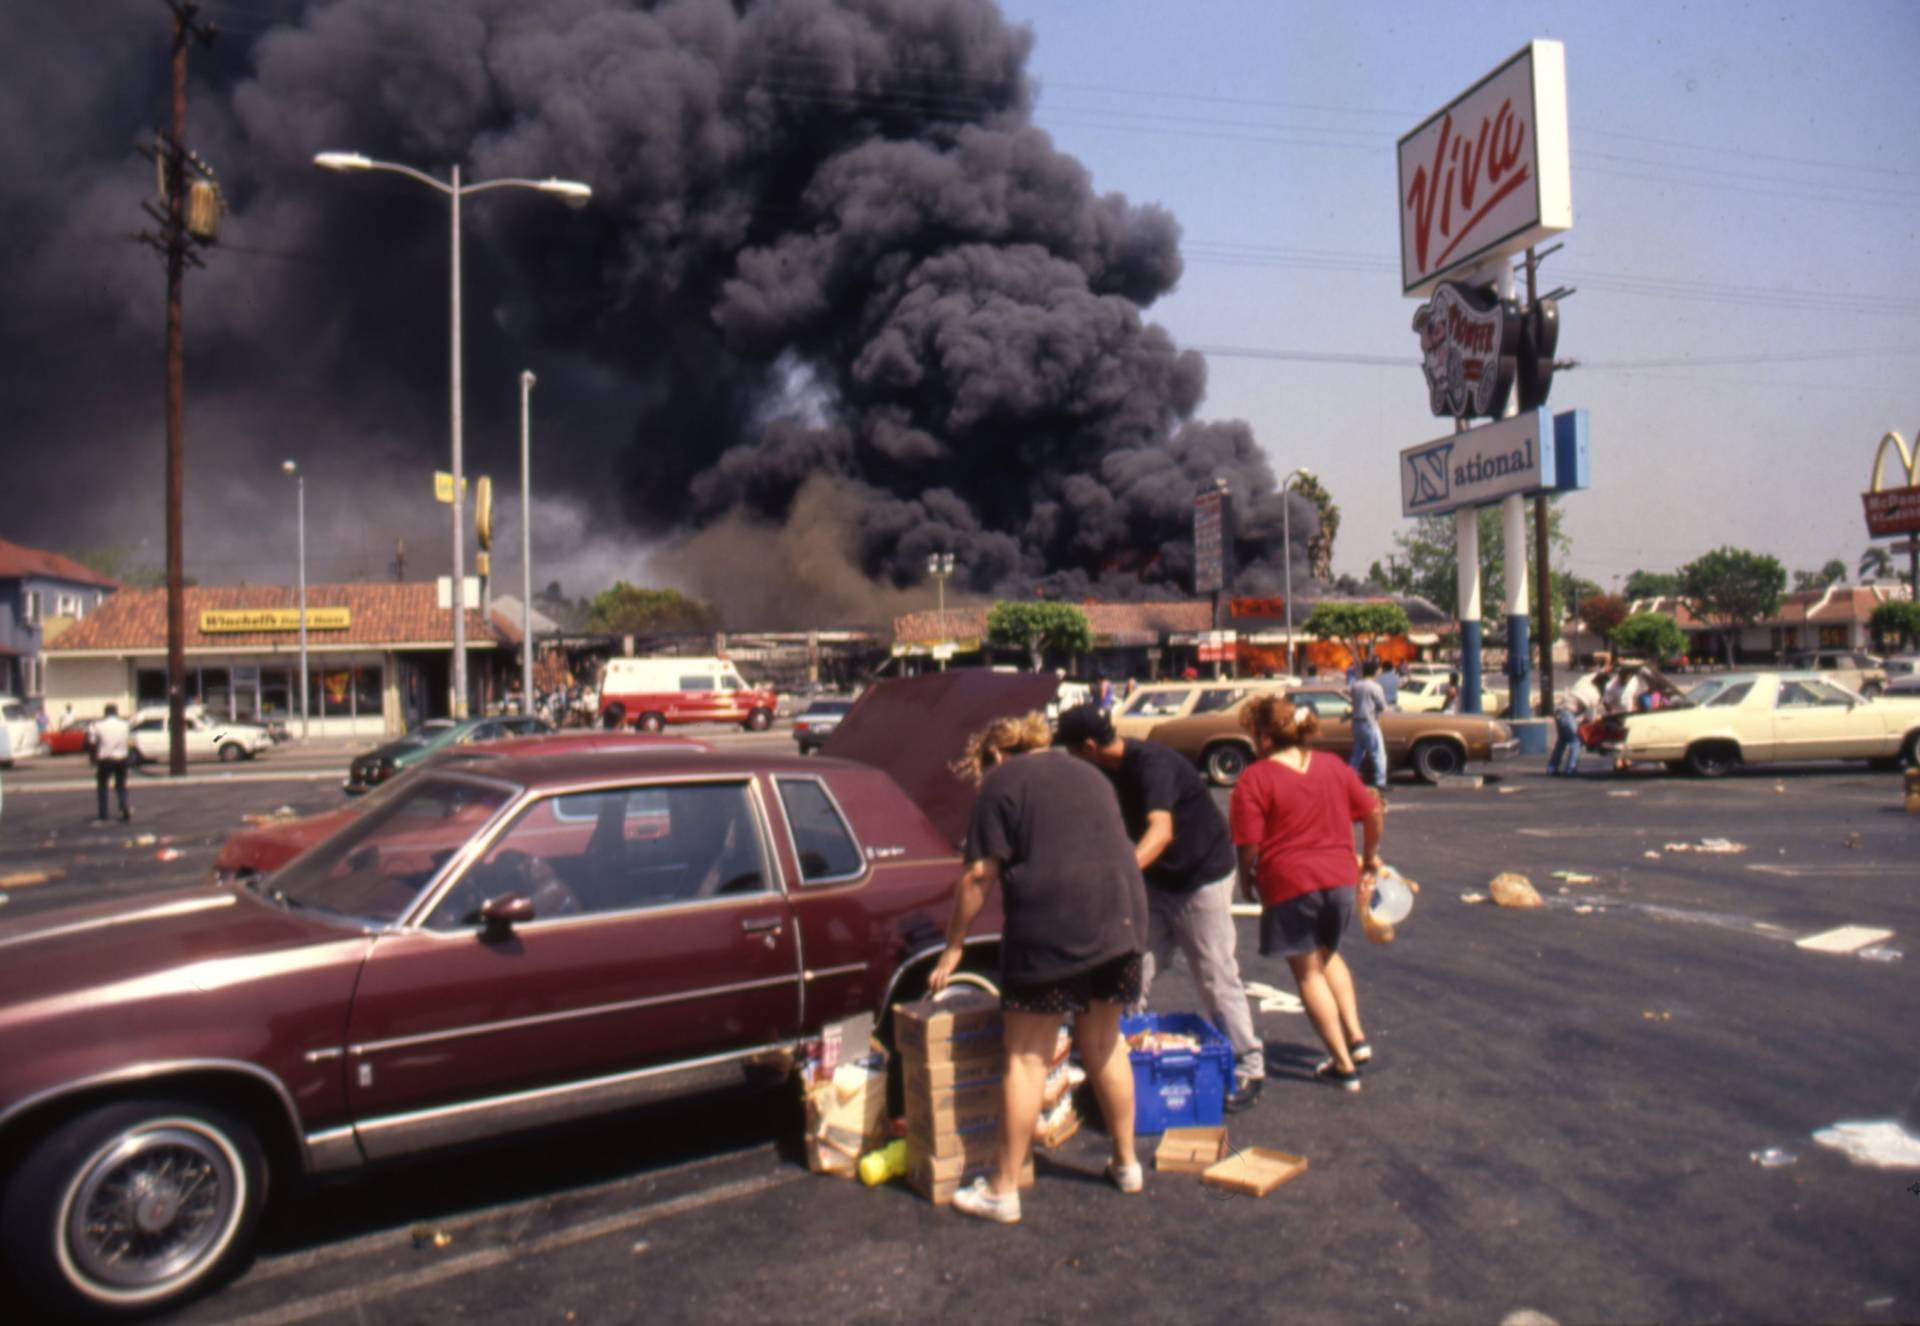 Looters load up a car at the Viva shopping center near a billowing fire during the rioting that erupted in Los Angeles on April 29, 1992, after a jury found four Los Angeles Police Department officers not guilty in the beating of Rodney King. Ron Eisenbeg/Michael Ochs Archives/Getty Images